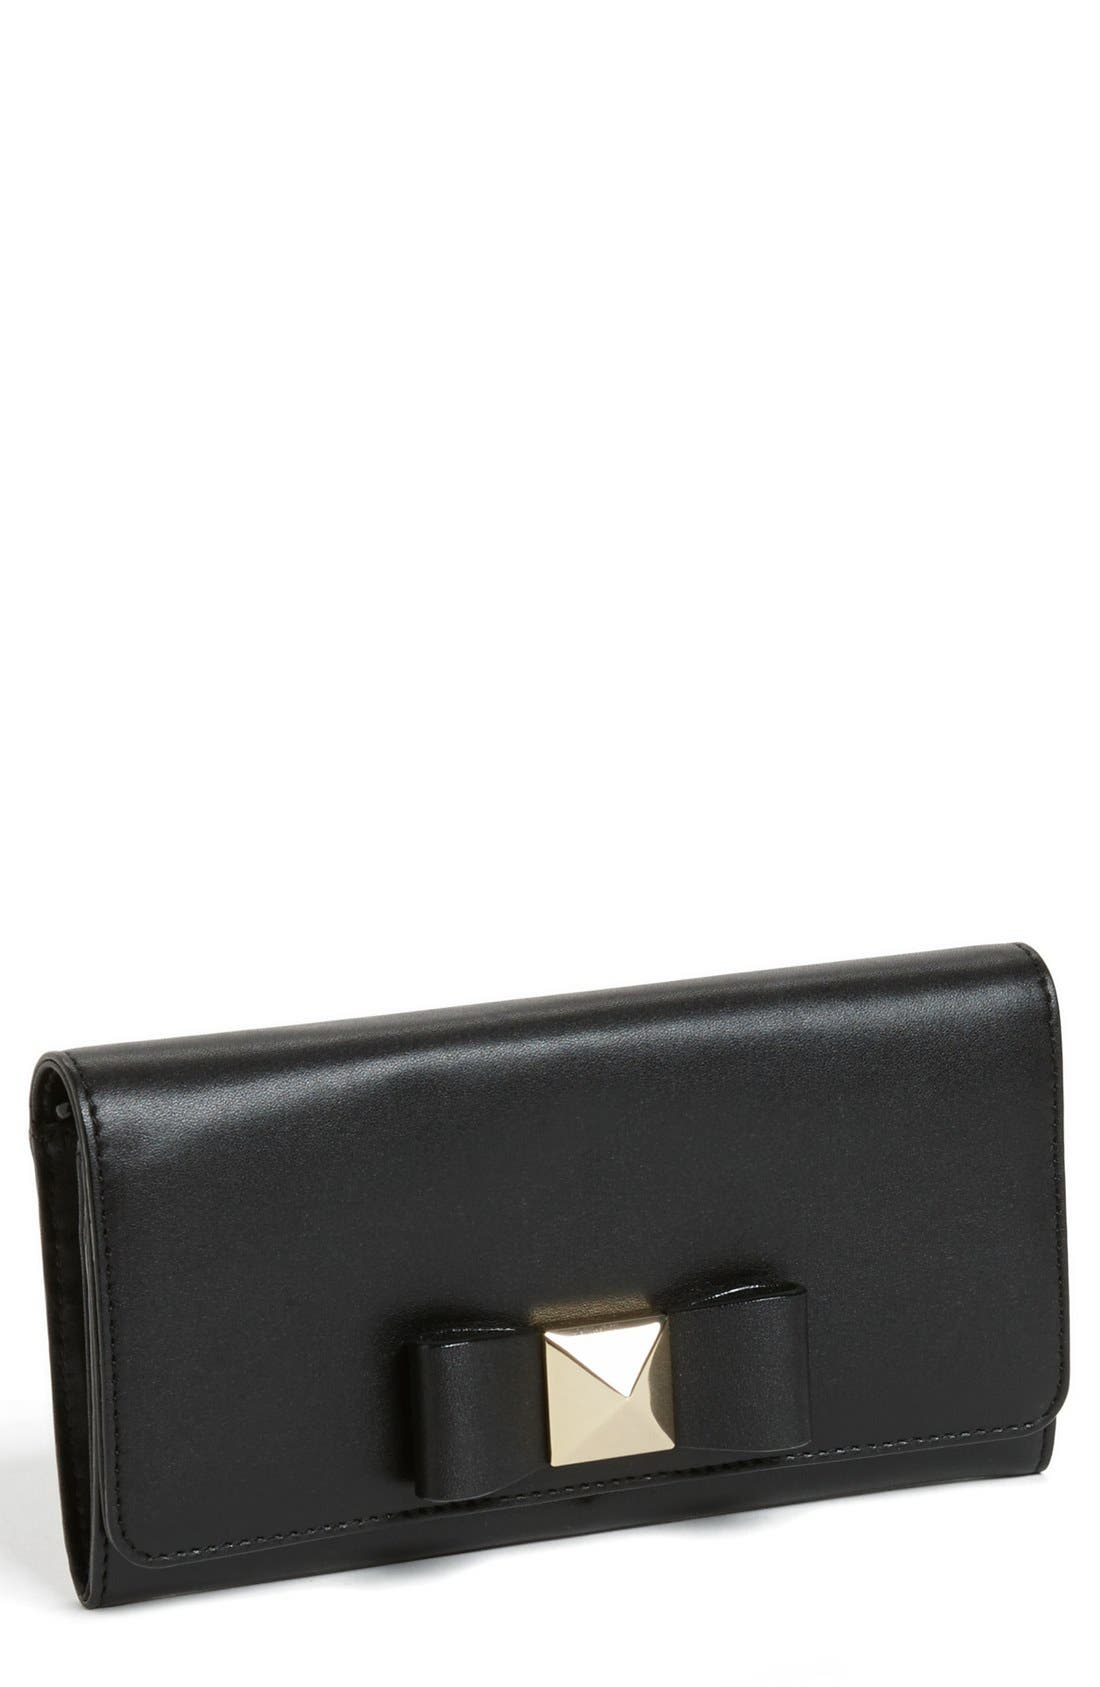 Alternate Image 1 Selected - kate spade new york 'bow terrace - cindy' continental wallet